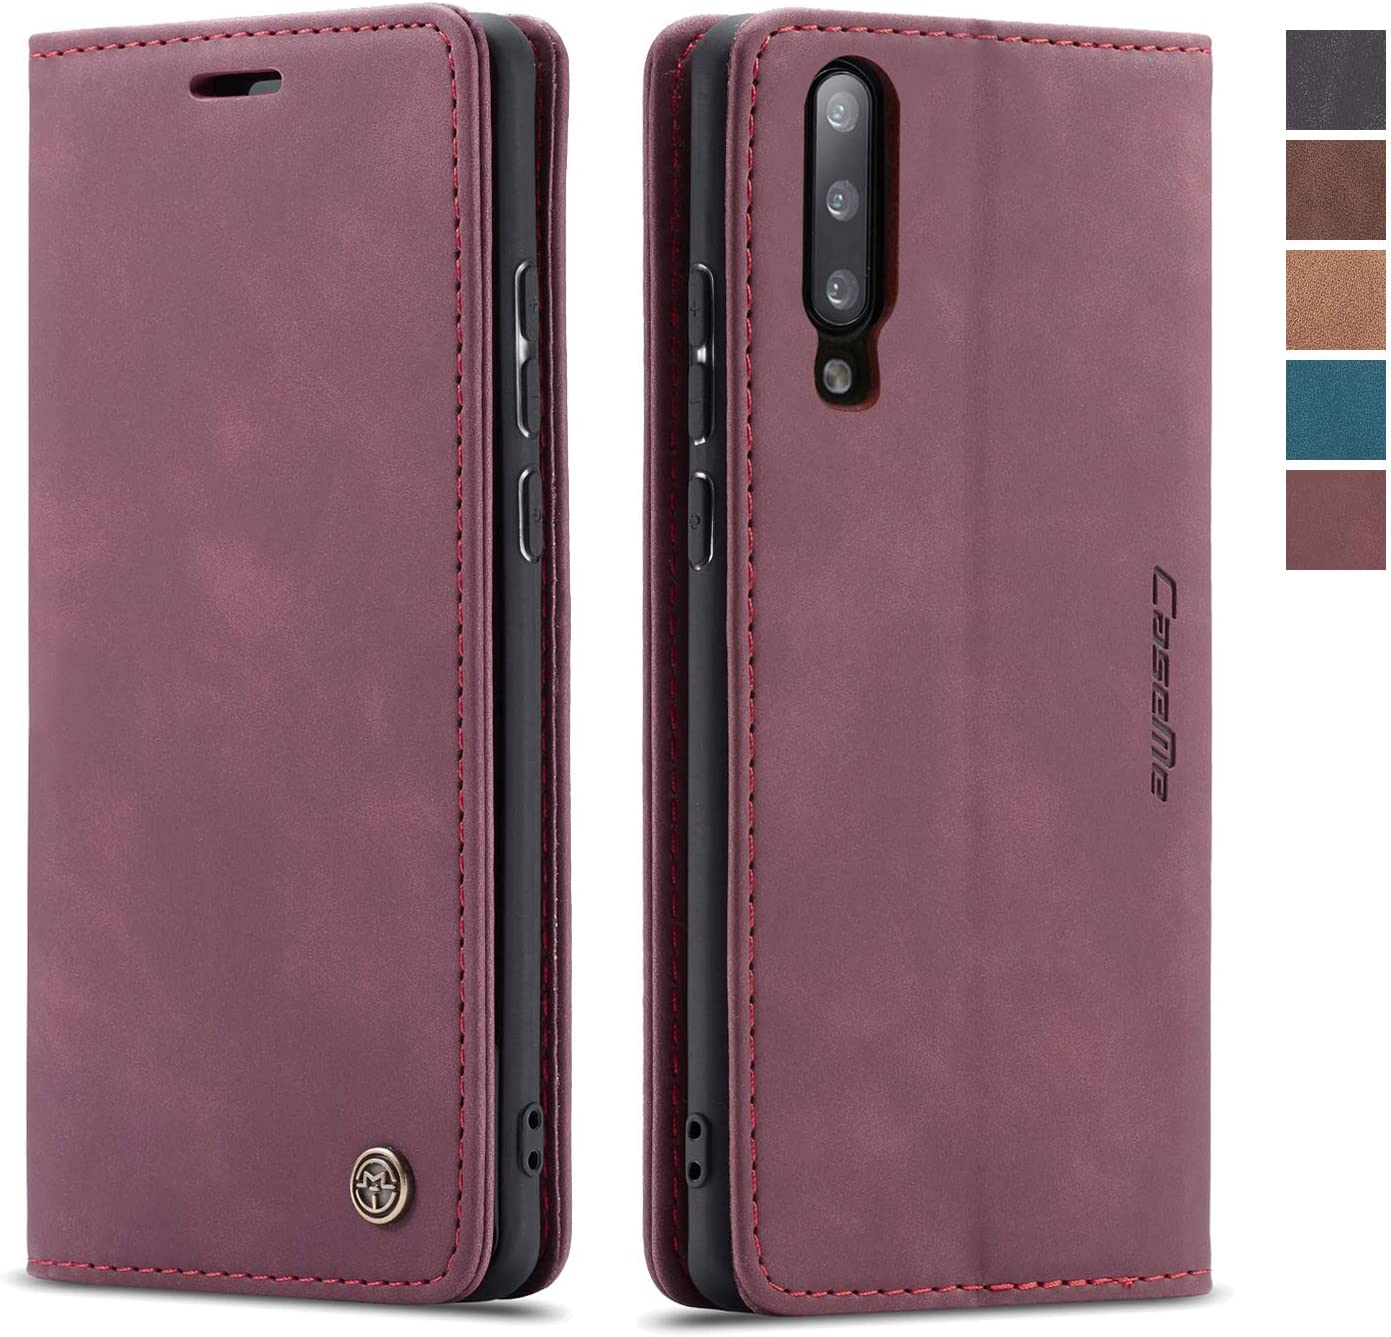 Samsung Galaxy A50 Case,Samsung Galaxy A50 Wallet Case Cover,Magnetic Stand Flip Protective Cover Retro Style Leather Flip Cover Durable Shockproof Protective Cover for Samsung Galaxy A50(Wine Red)